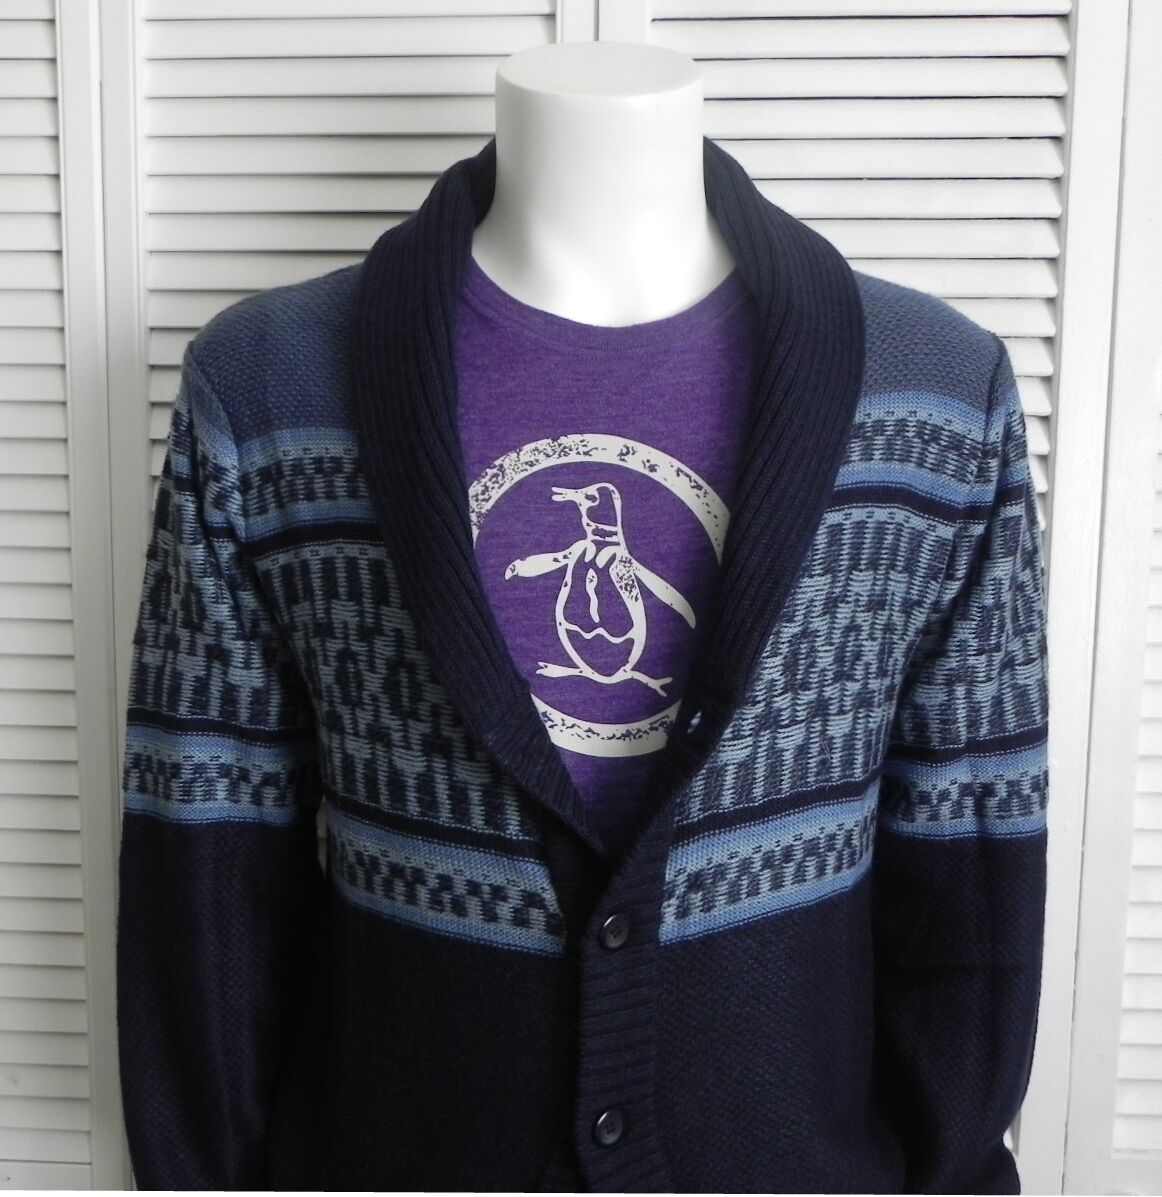 NEW Mens Größe XXXL 3XL ALPACA Navy Blau Shawl Collar Cardigan Sweater Pattern